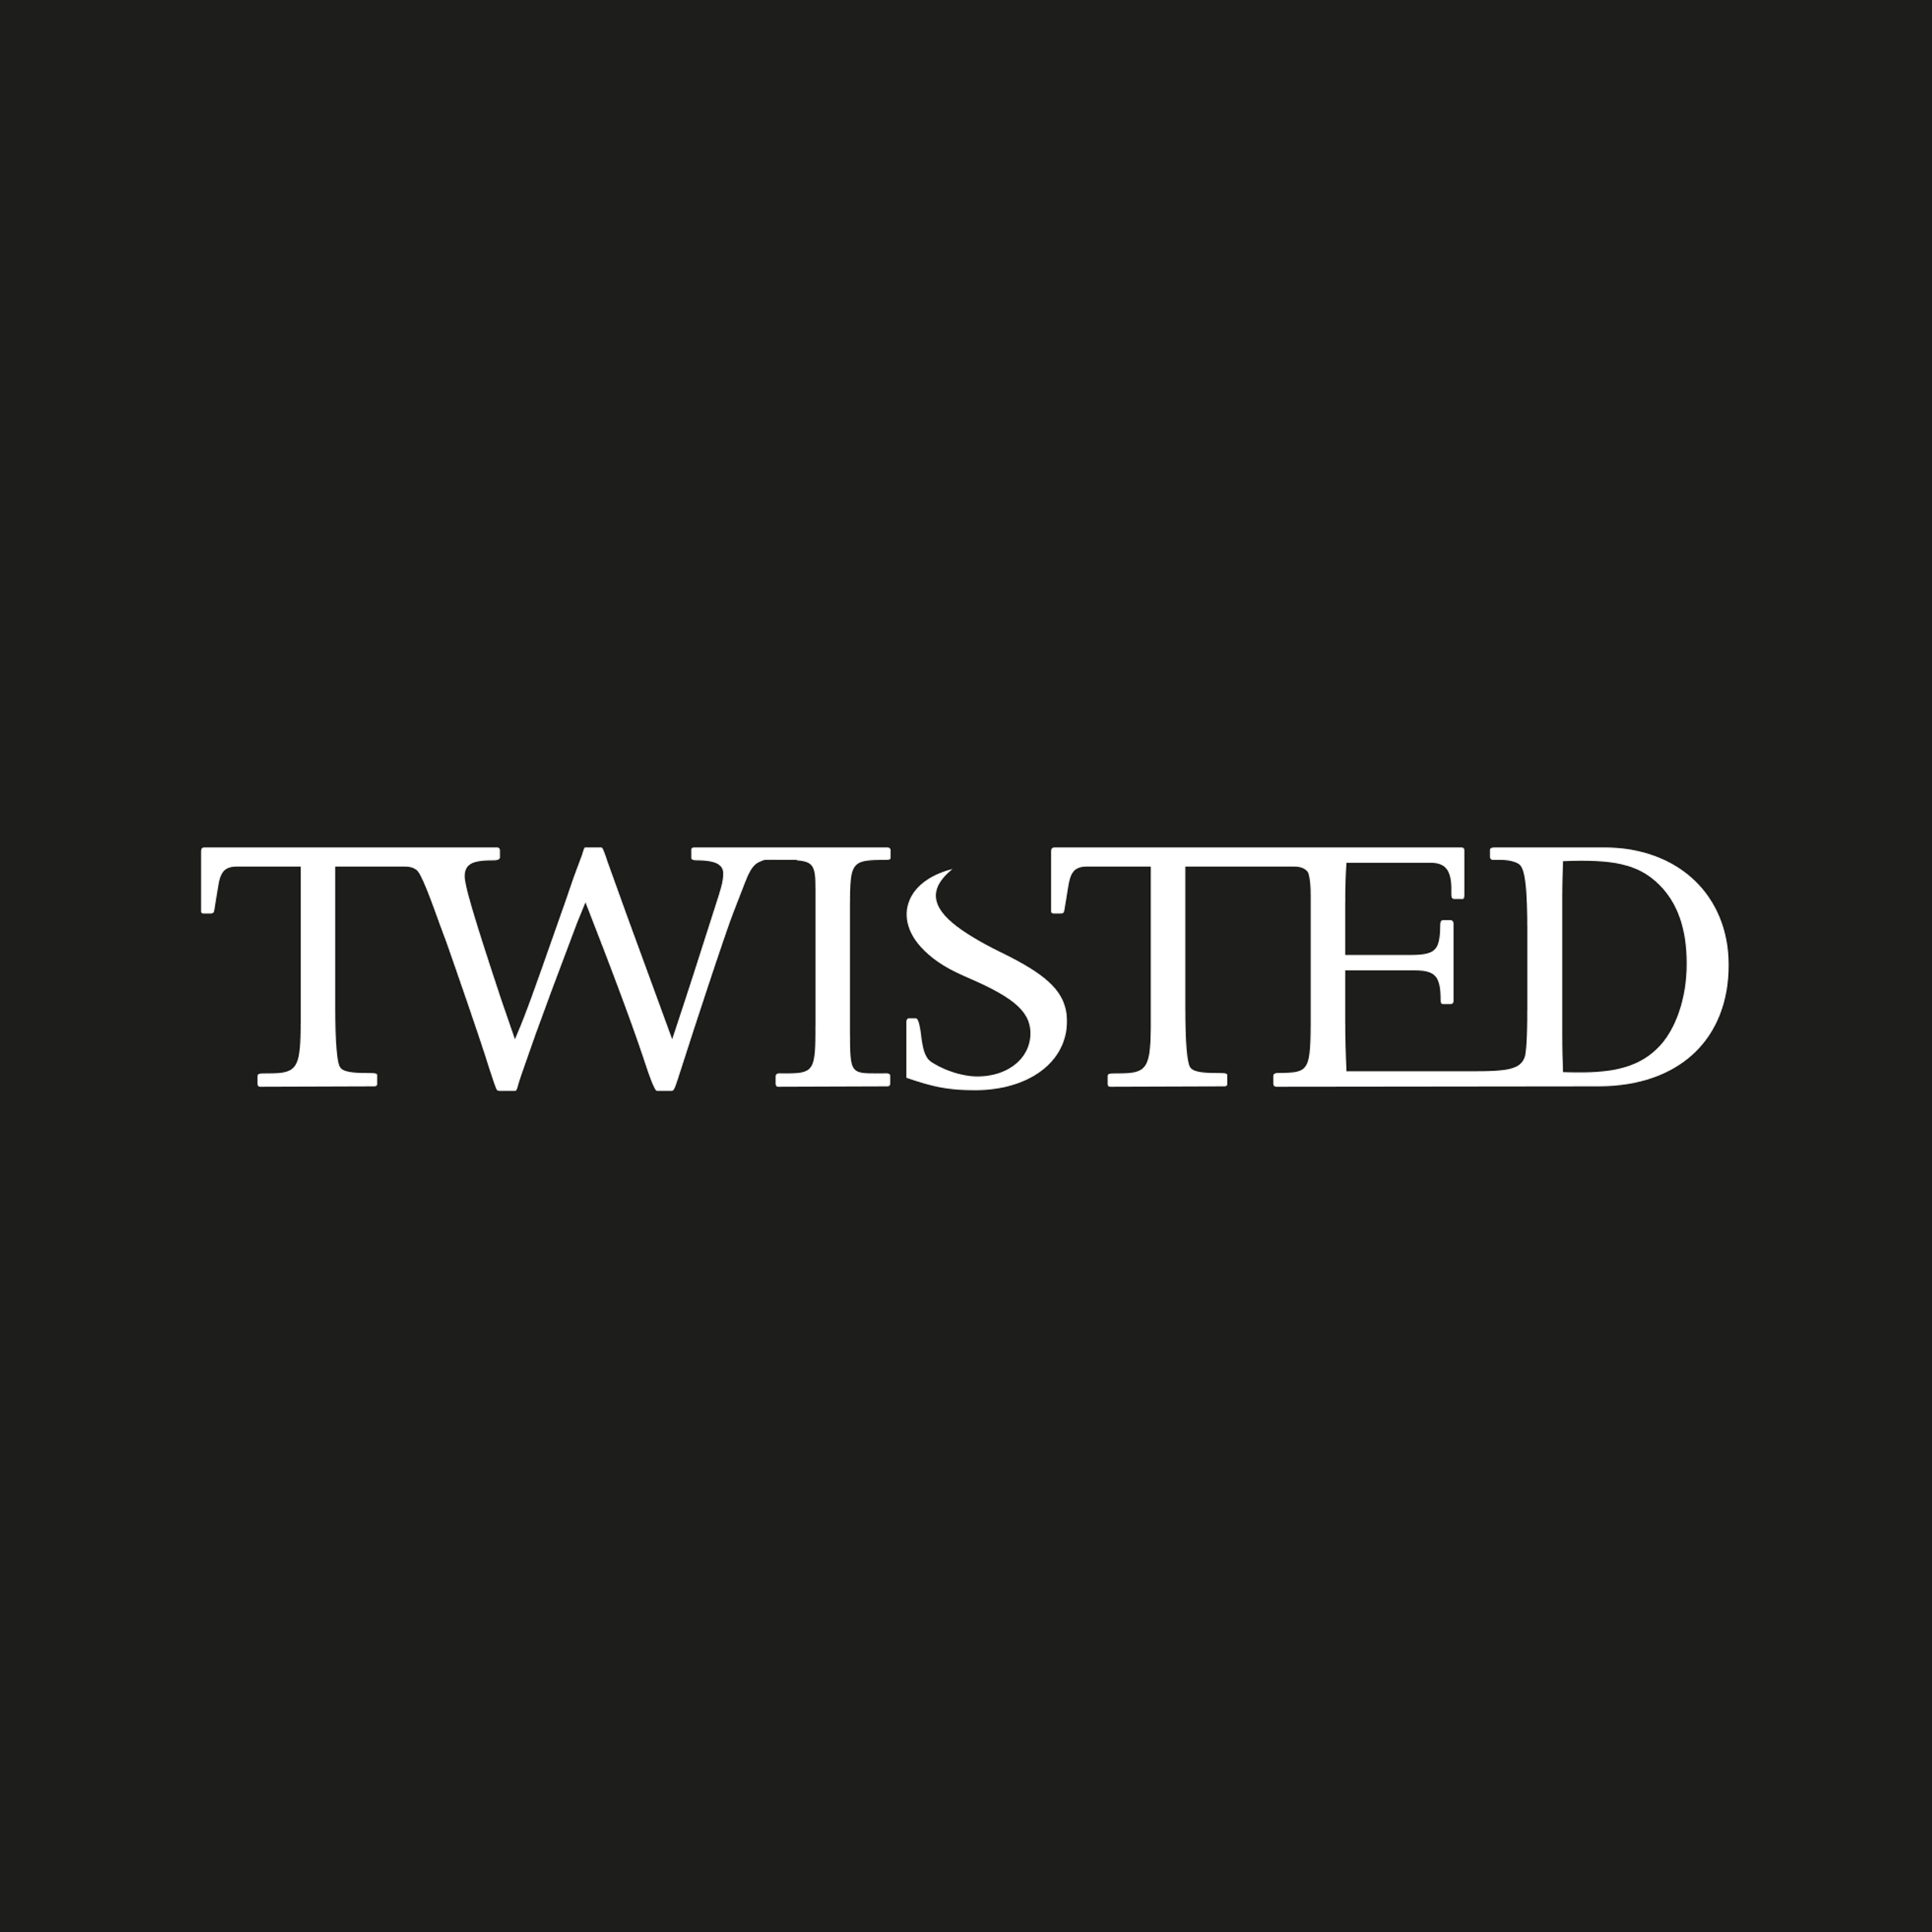 twisted_black [Omgezet].png